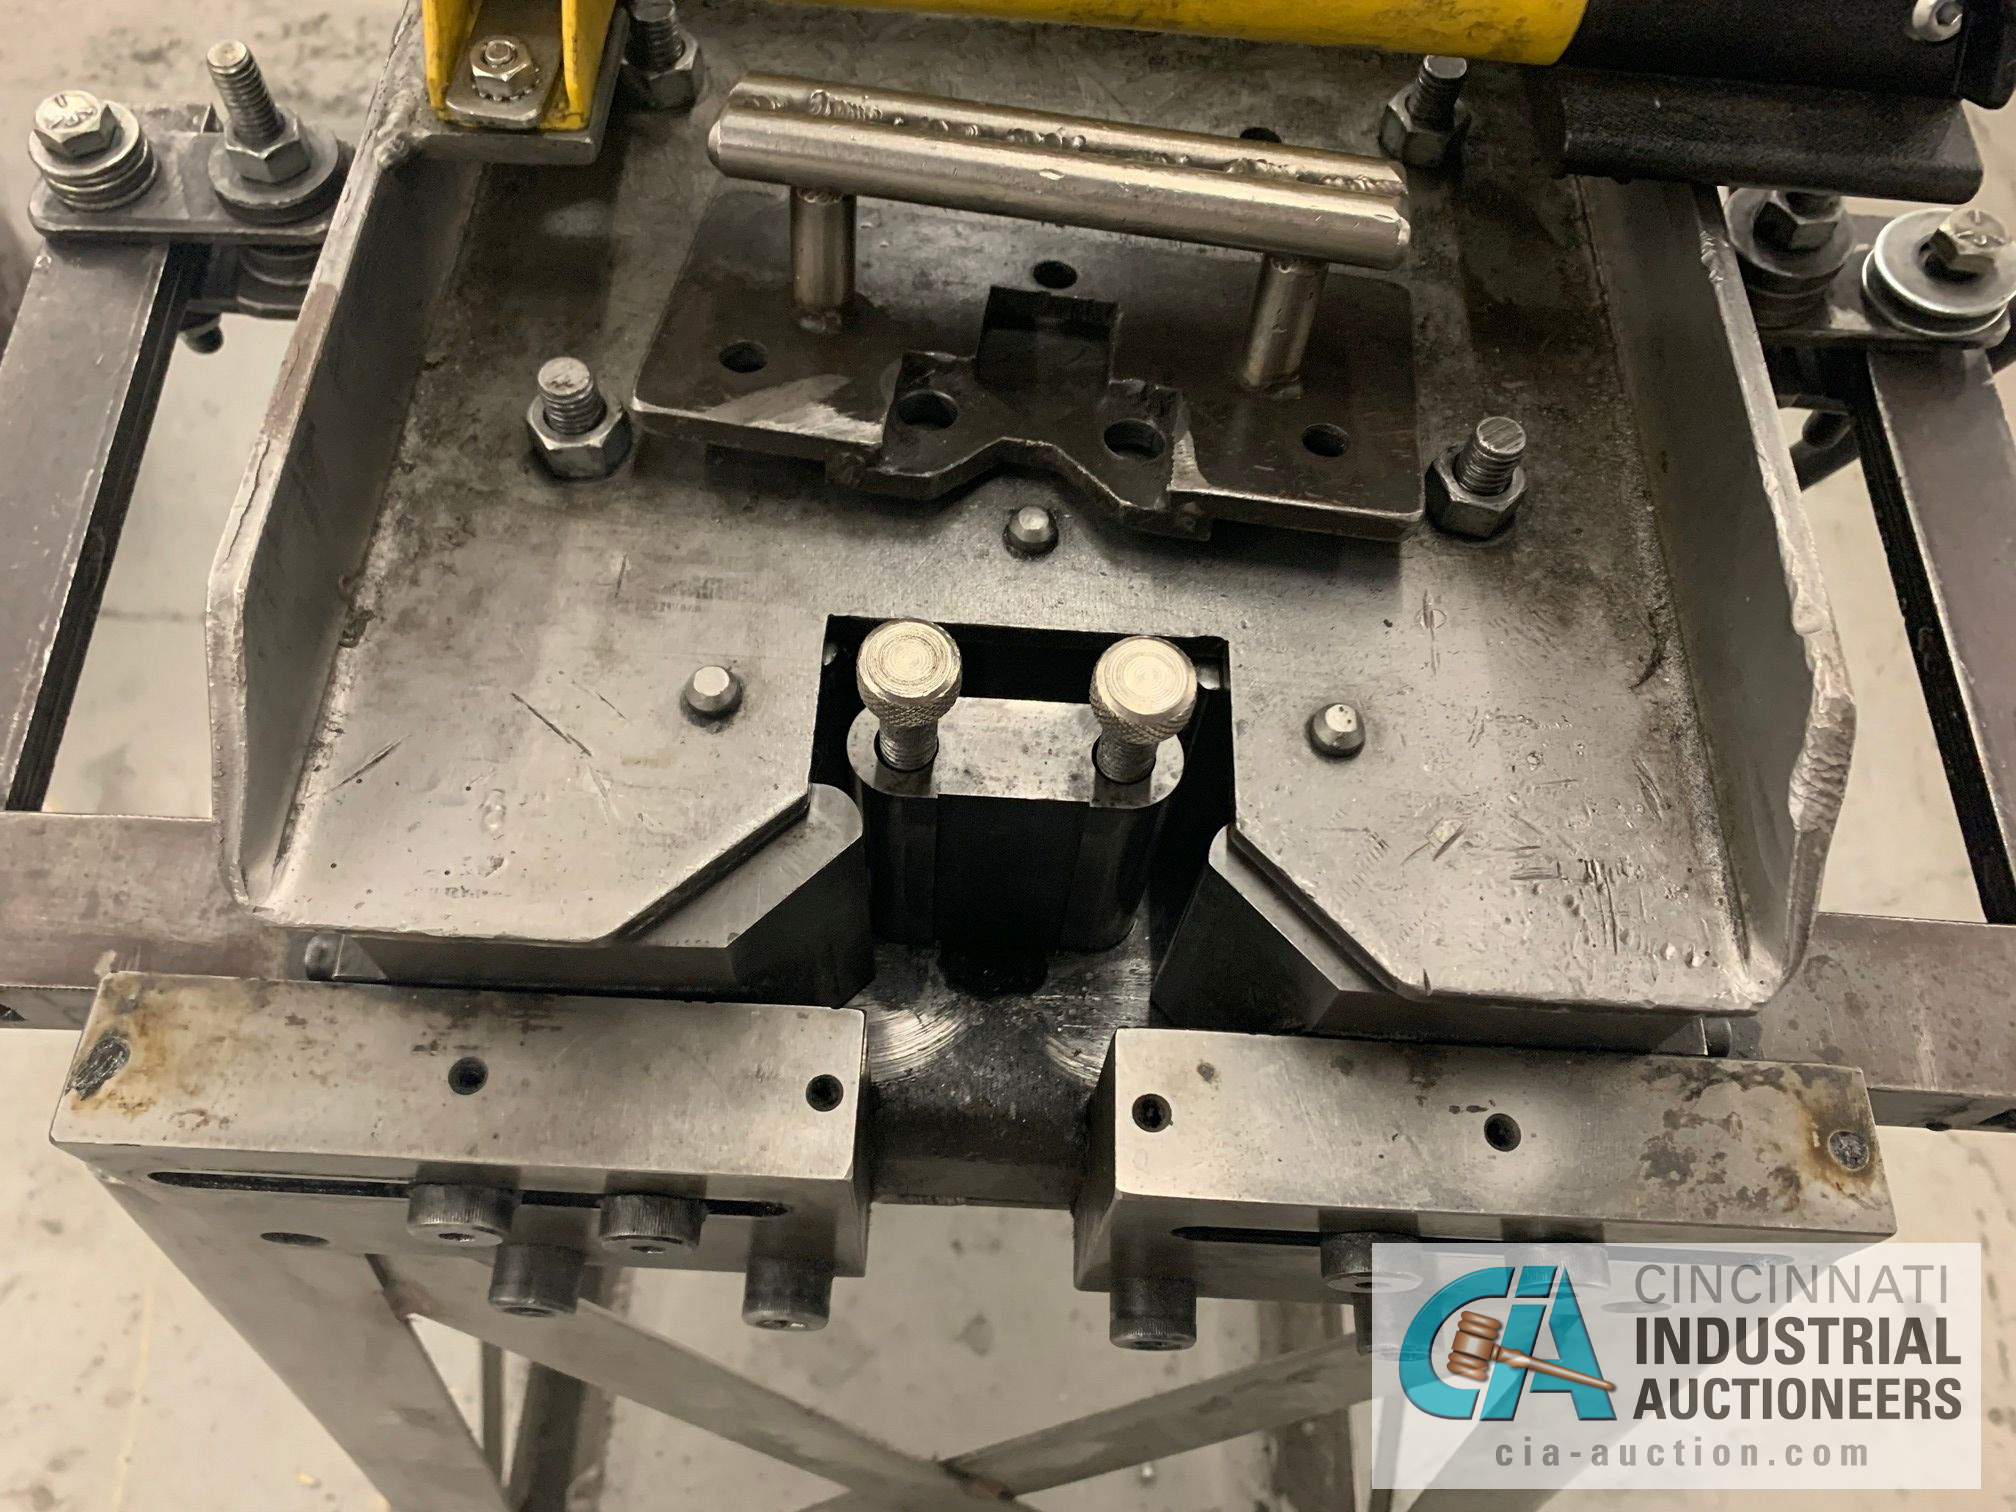 CUSTOM BUILT FORMING MACHINE AND ENERPAC HAND PUNCH - Image 5 of 5